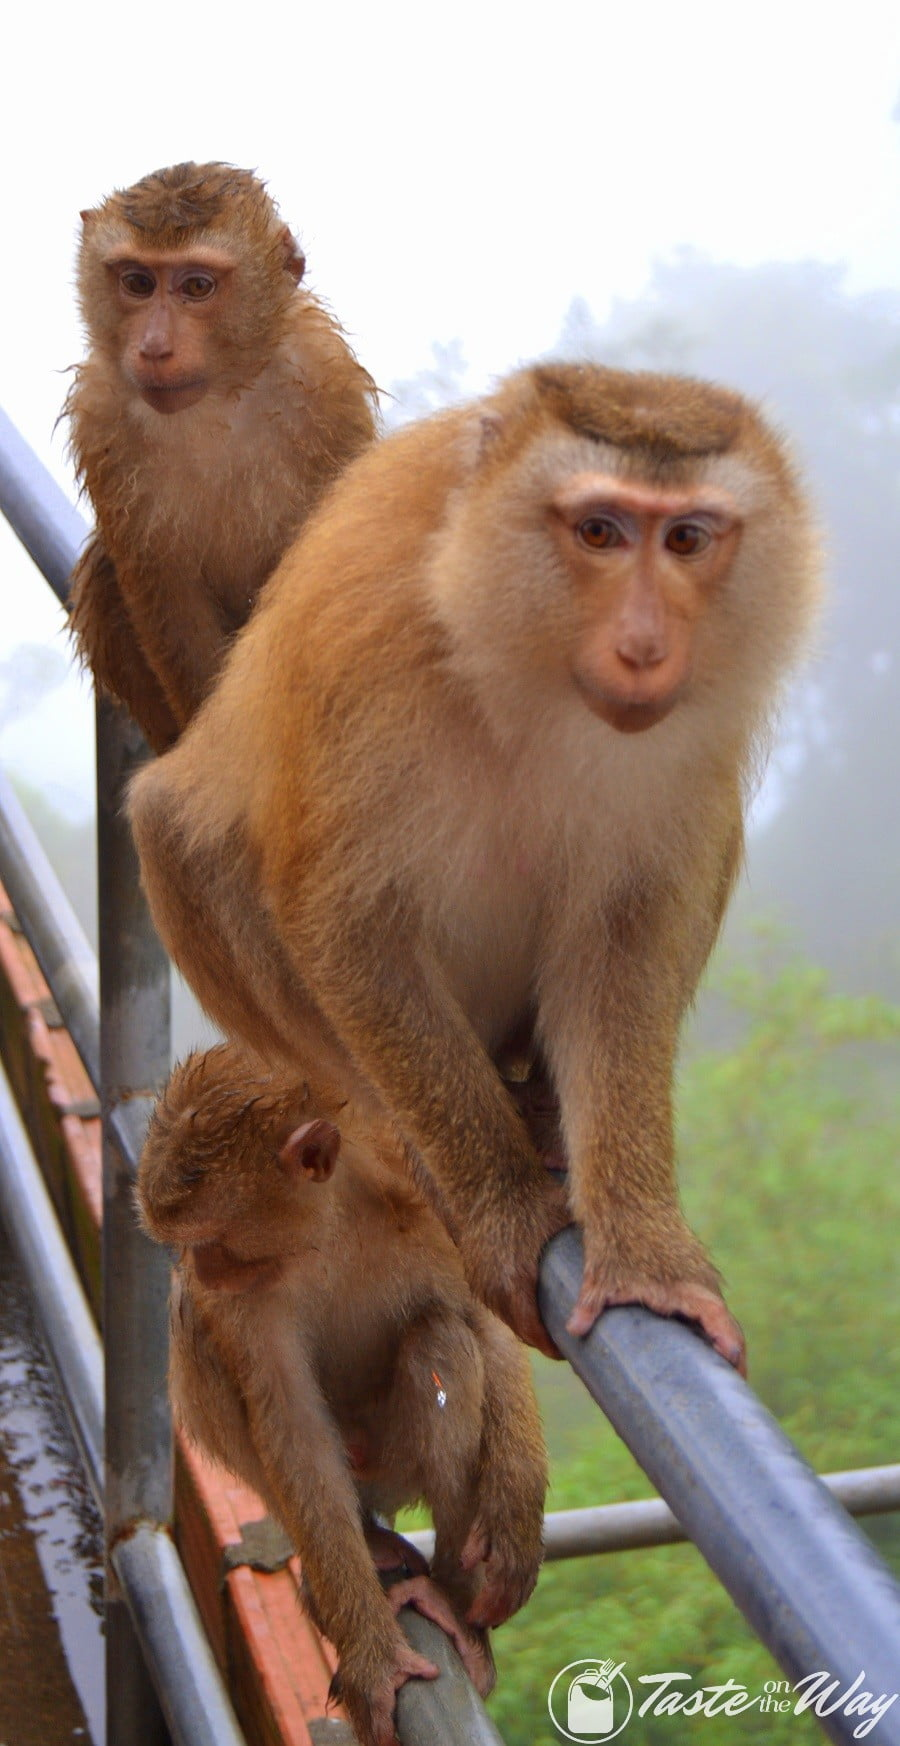 Monkeys at the Big Buddha #Phuket #Thailand #travel